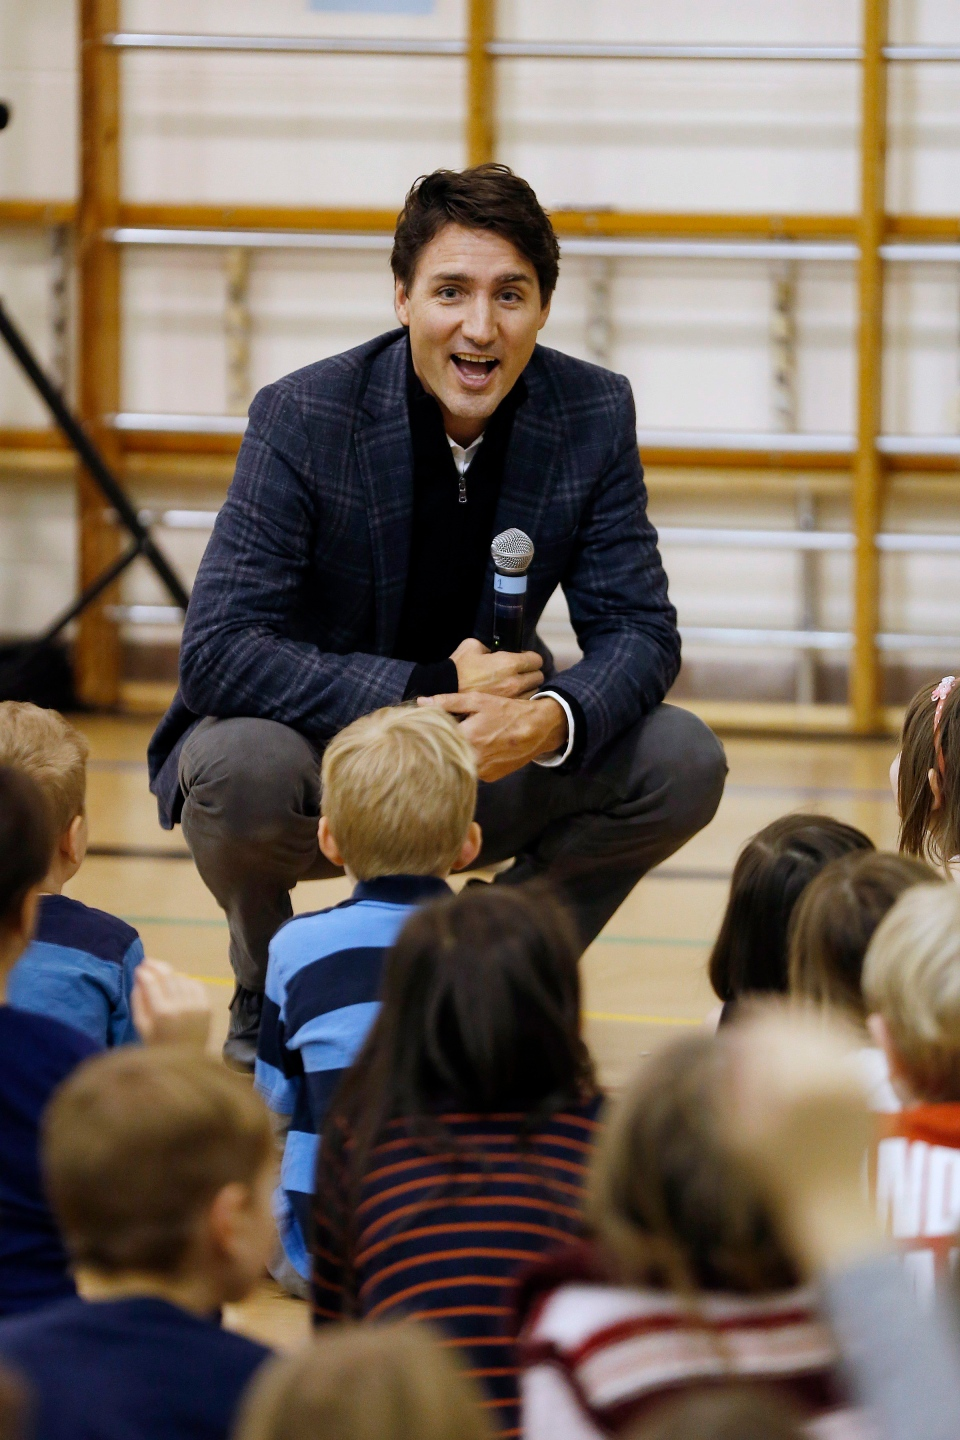 Prime Minister Justin Trudeau visits with staff and students at Robert H. Smith School in Winnipeg, Thursday, January 26, 2017. (John Woods/The Canadian Press)